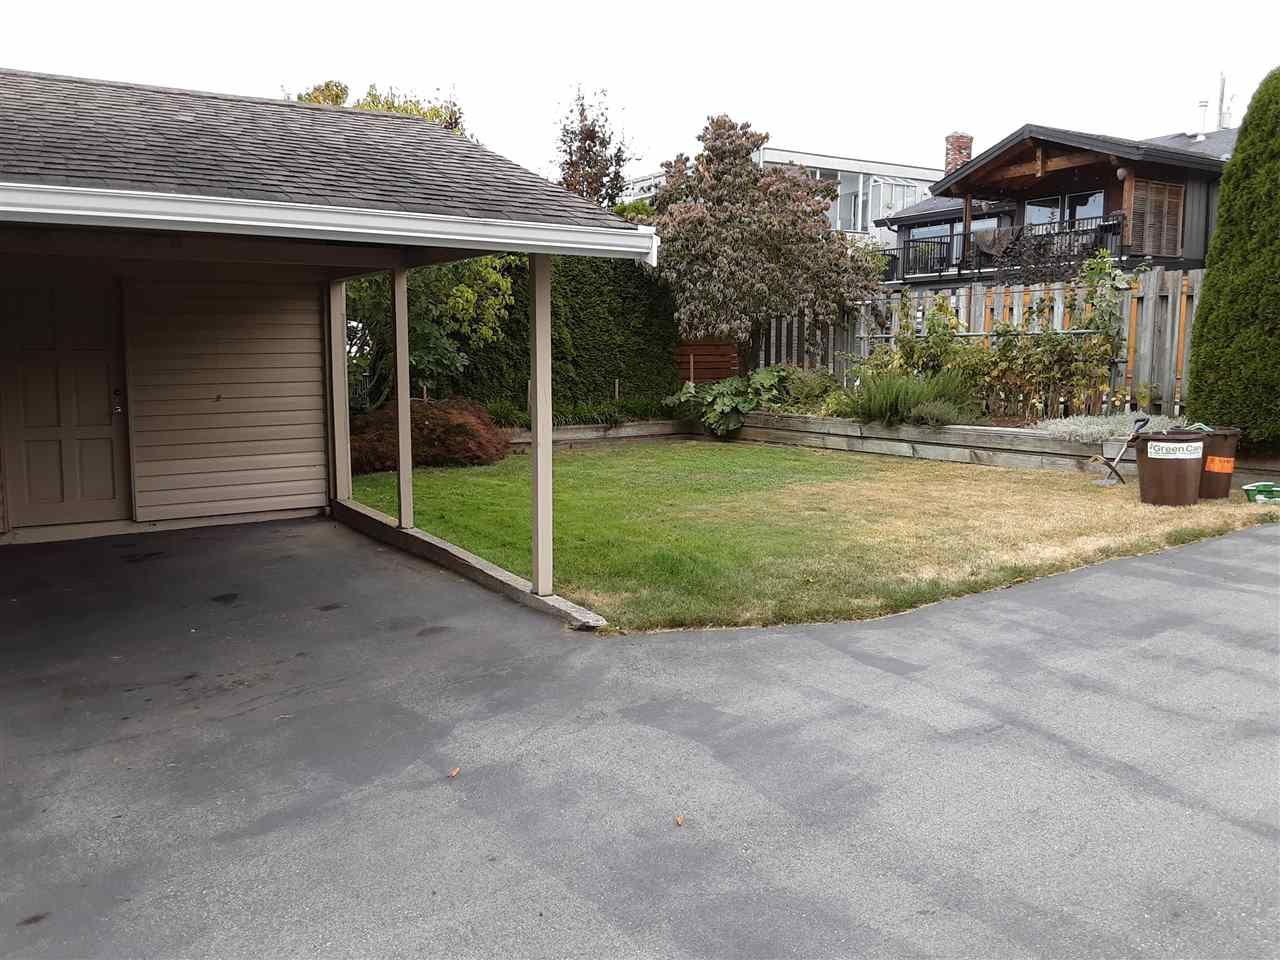 Photo 31: Photos: 15291 COLUMBIA Avenue: White Rock House for sale (South Surrey White Rock)  : MLS®# R2492863